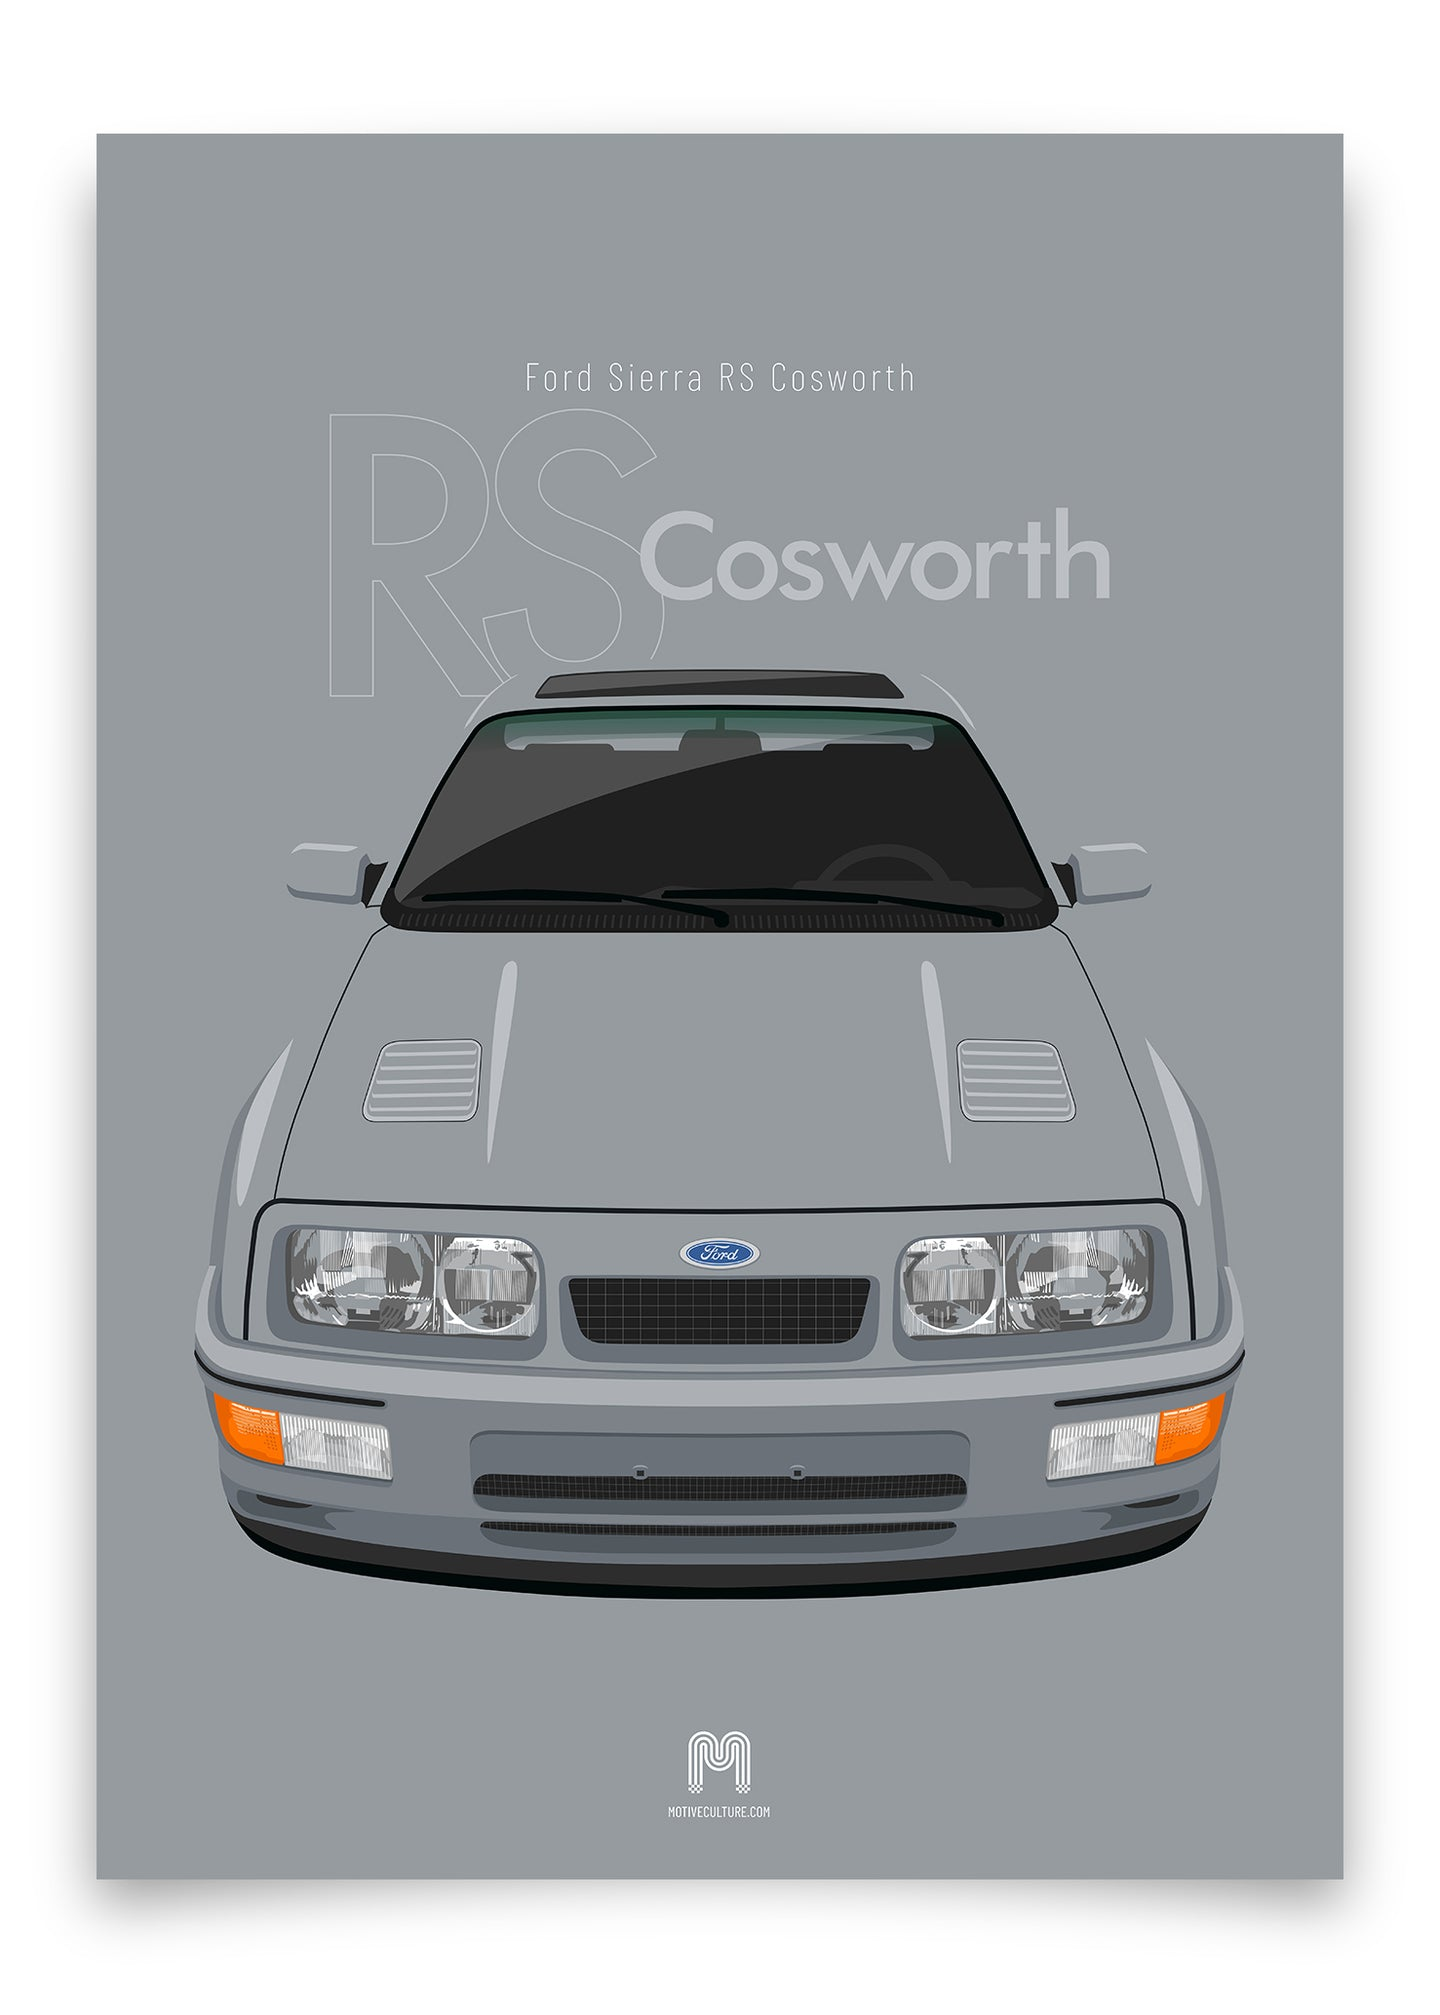 1986 Ford Sierra RS Cosworth - Moonstone Blue - poster print